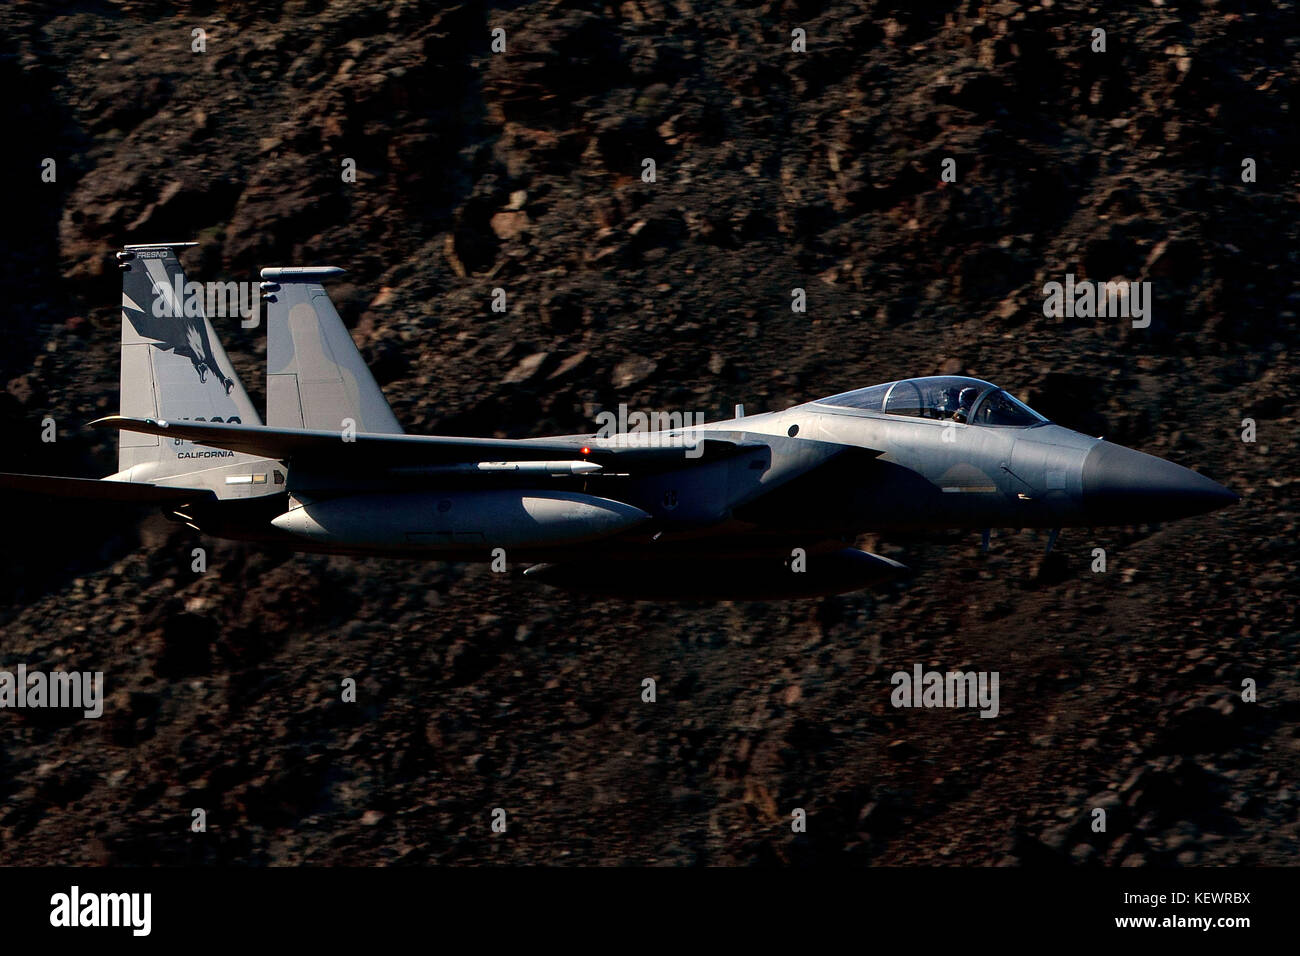 United States Air Force McDonnell-Douglas F-15C Eagle (81-022) from the 144th Fighter Wing, California Air National - Stock Image